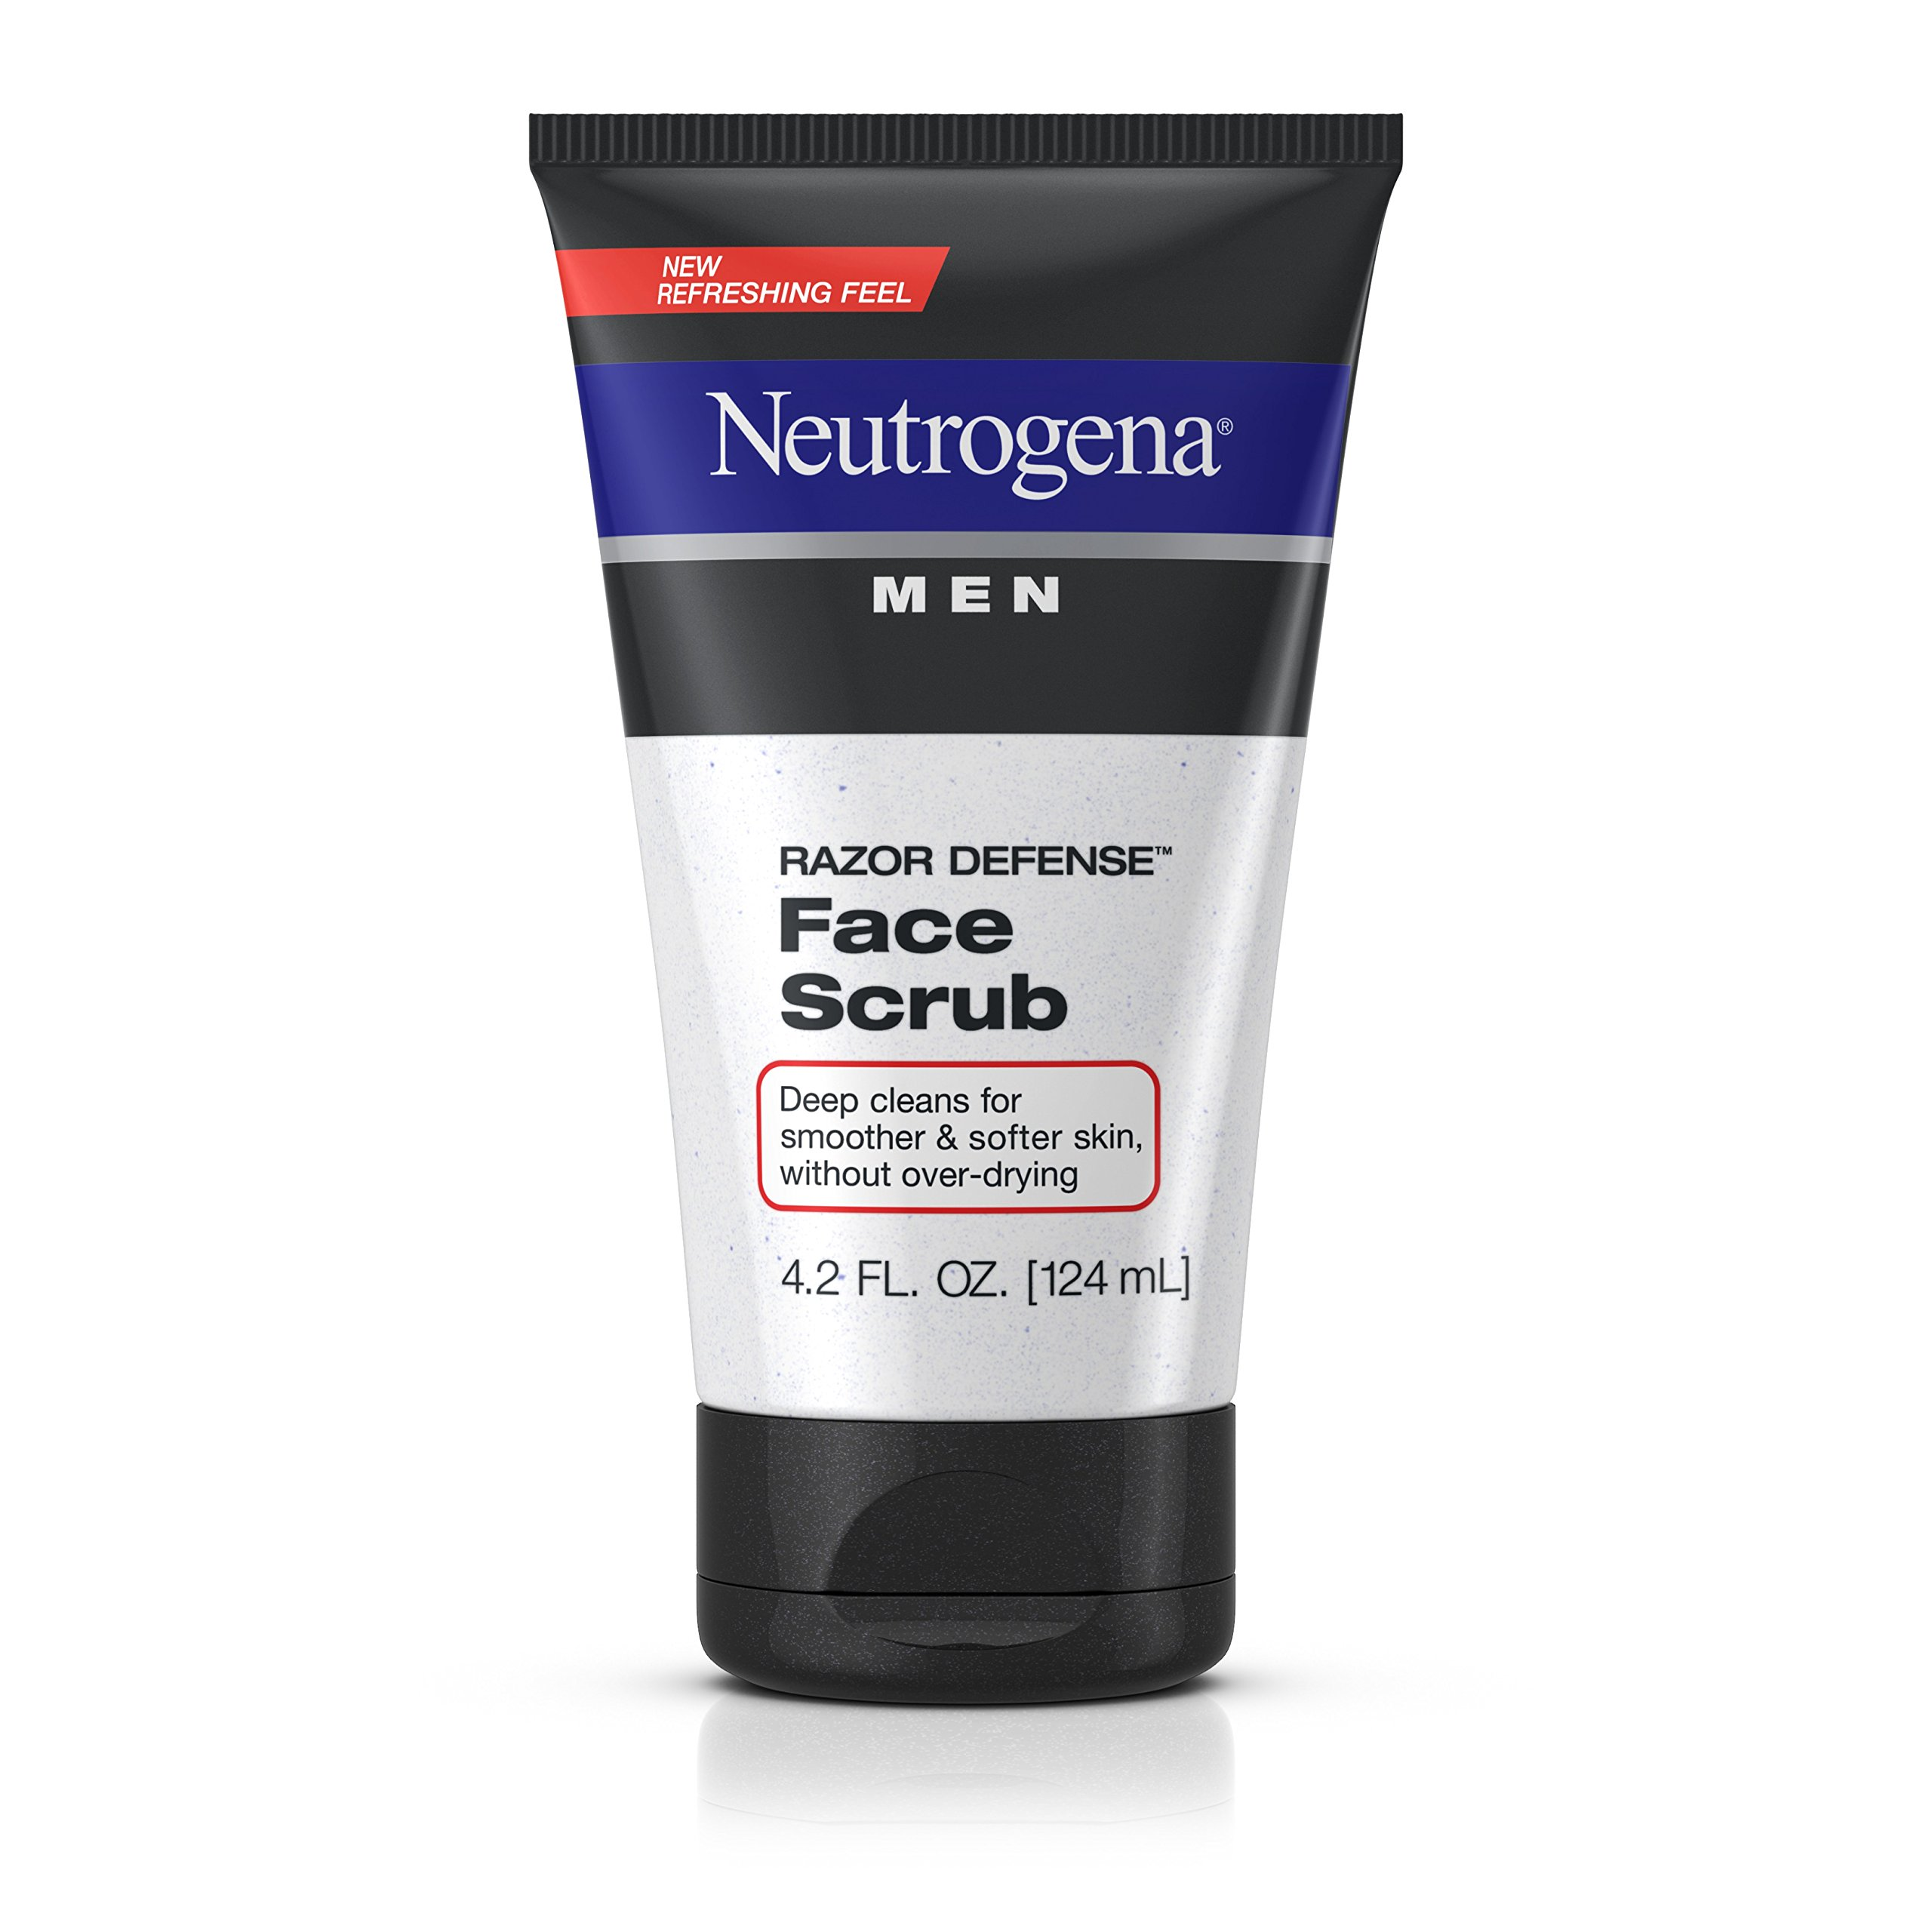 Neutrogena Men Exfoliating Razor Defense Daily Shave Face Scrub, Conditioning Facial Cleanser for Smoother Skin & Less Razor Irritation, Dye-Free, 4.2 fl. oz (Pack of 3) by Neutrogena